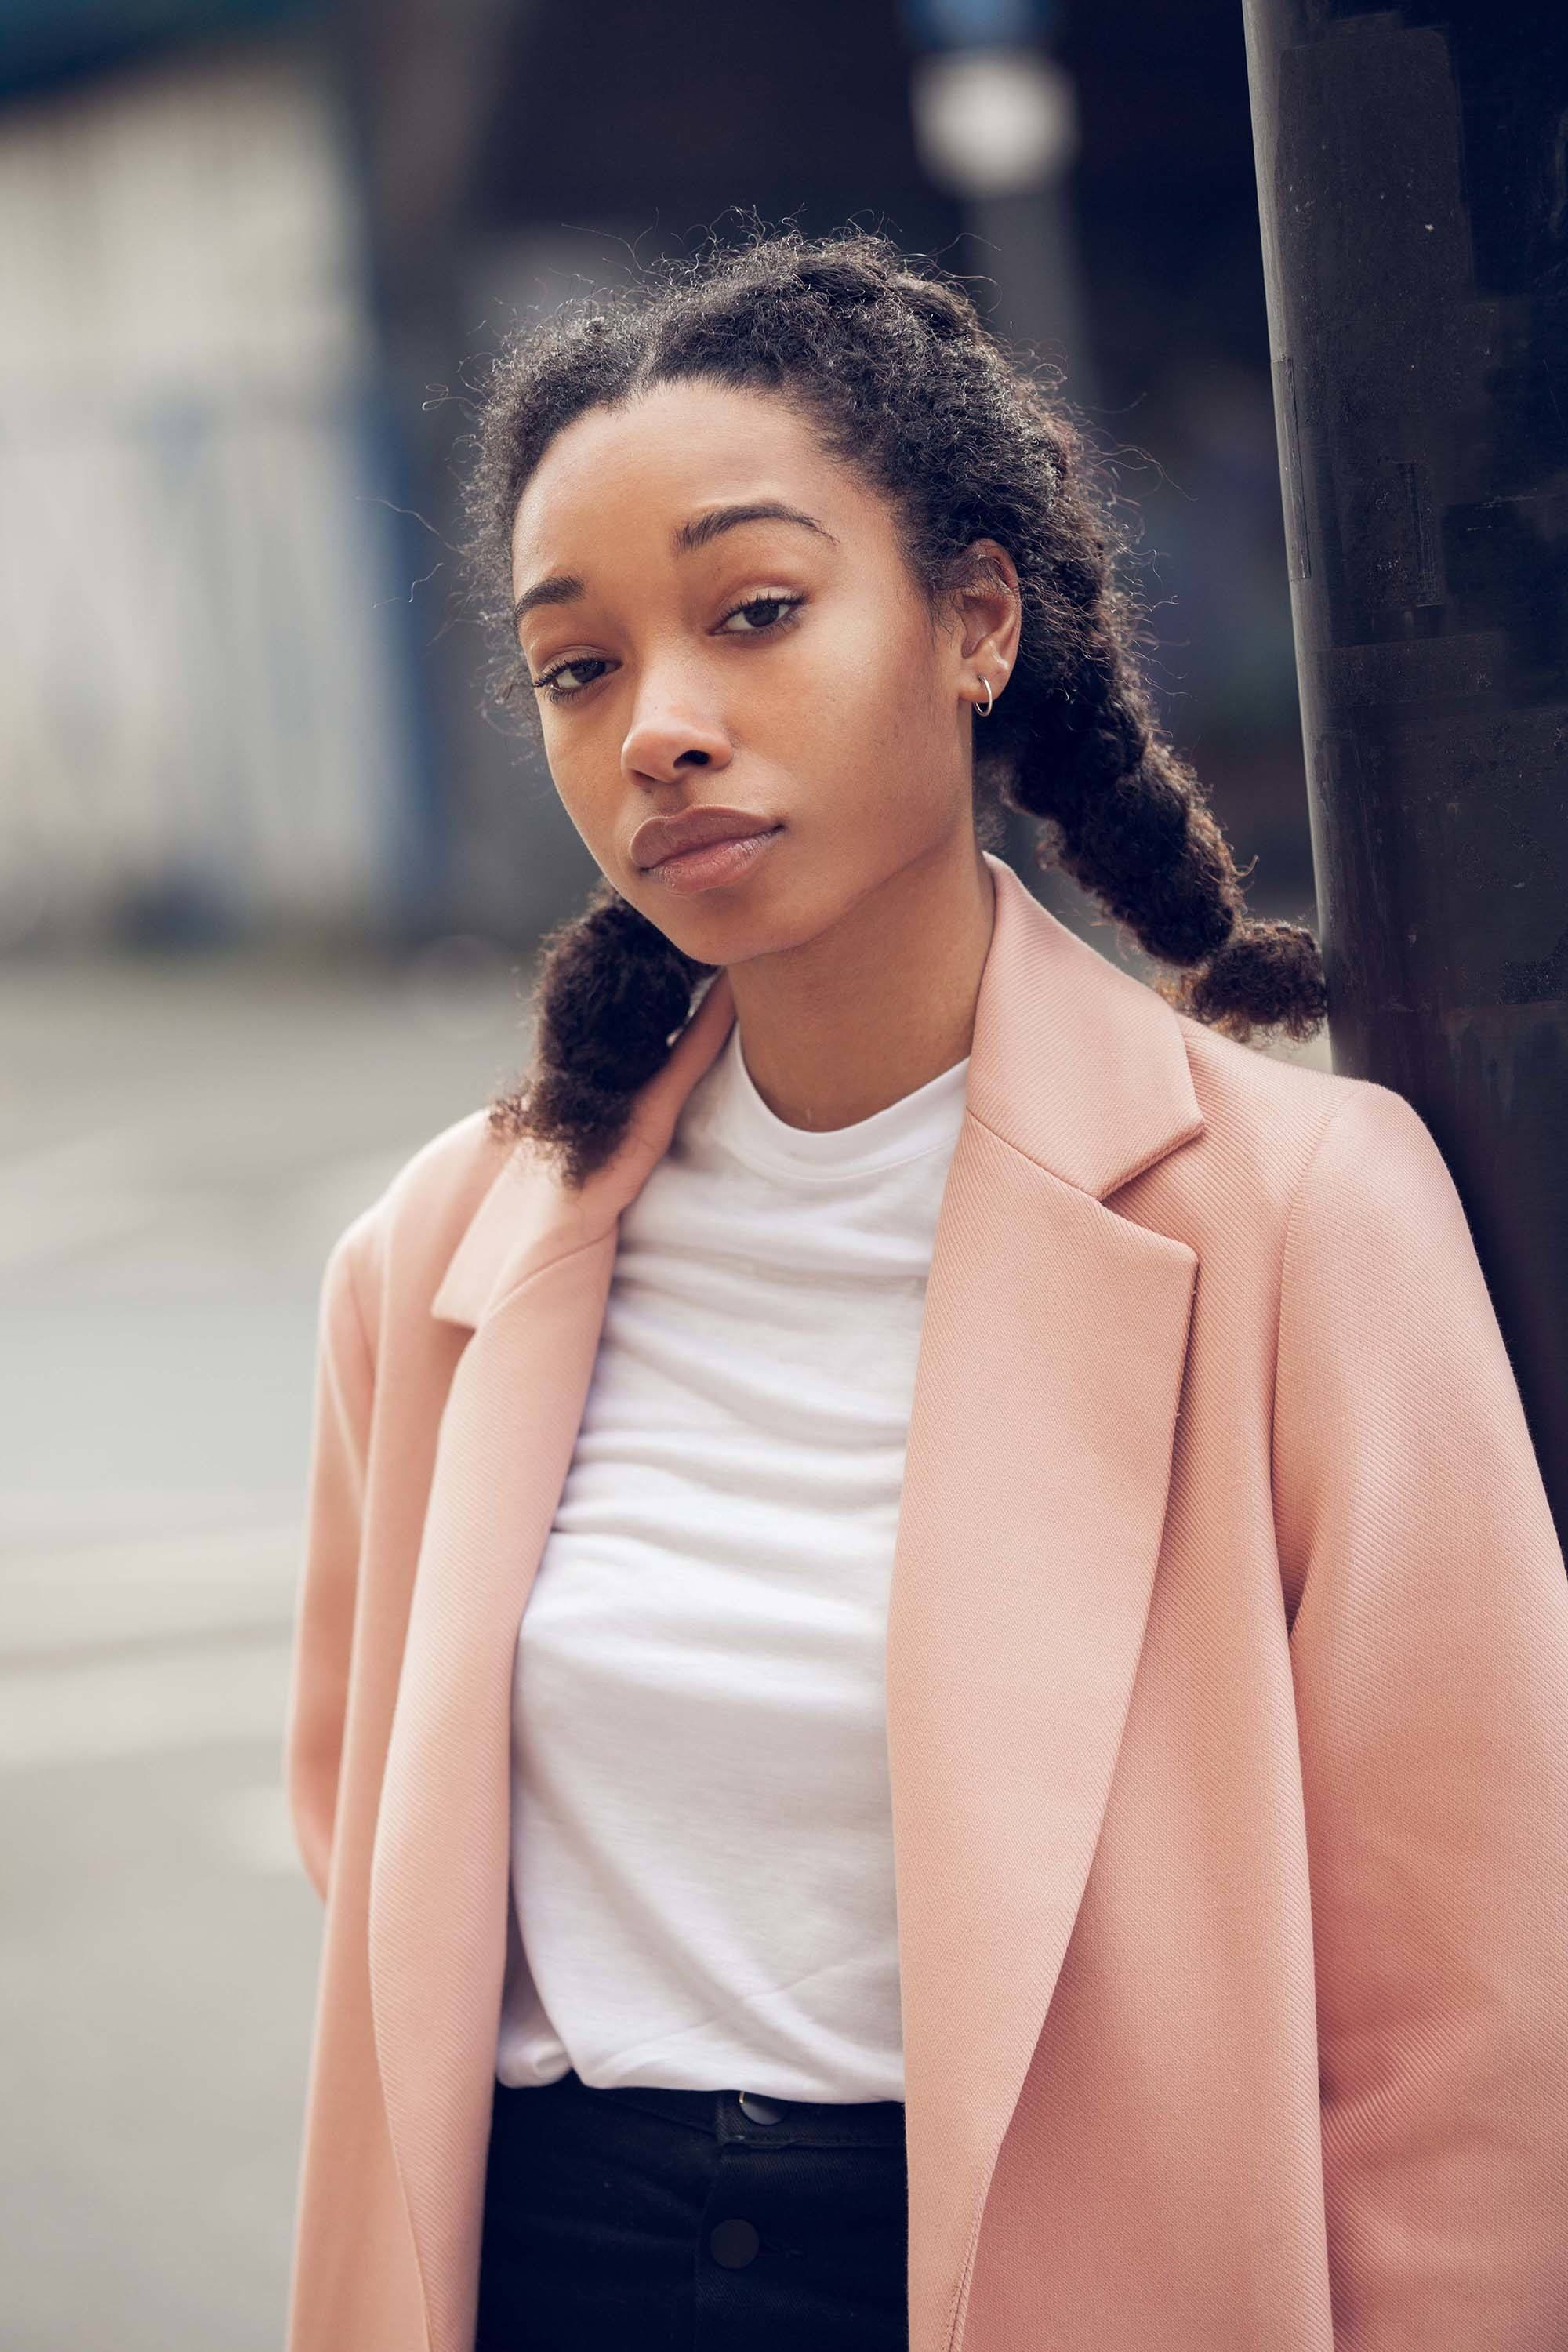 Low manipulation hairstyles: Close up of black model with pigtails hairstyle, wearing pink jacket and white shirt, street style